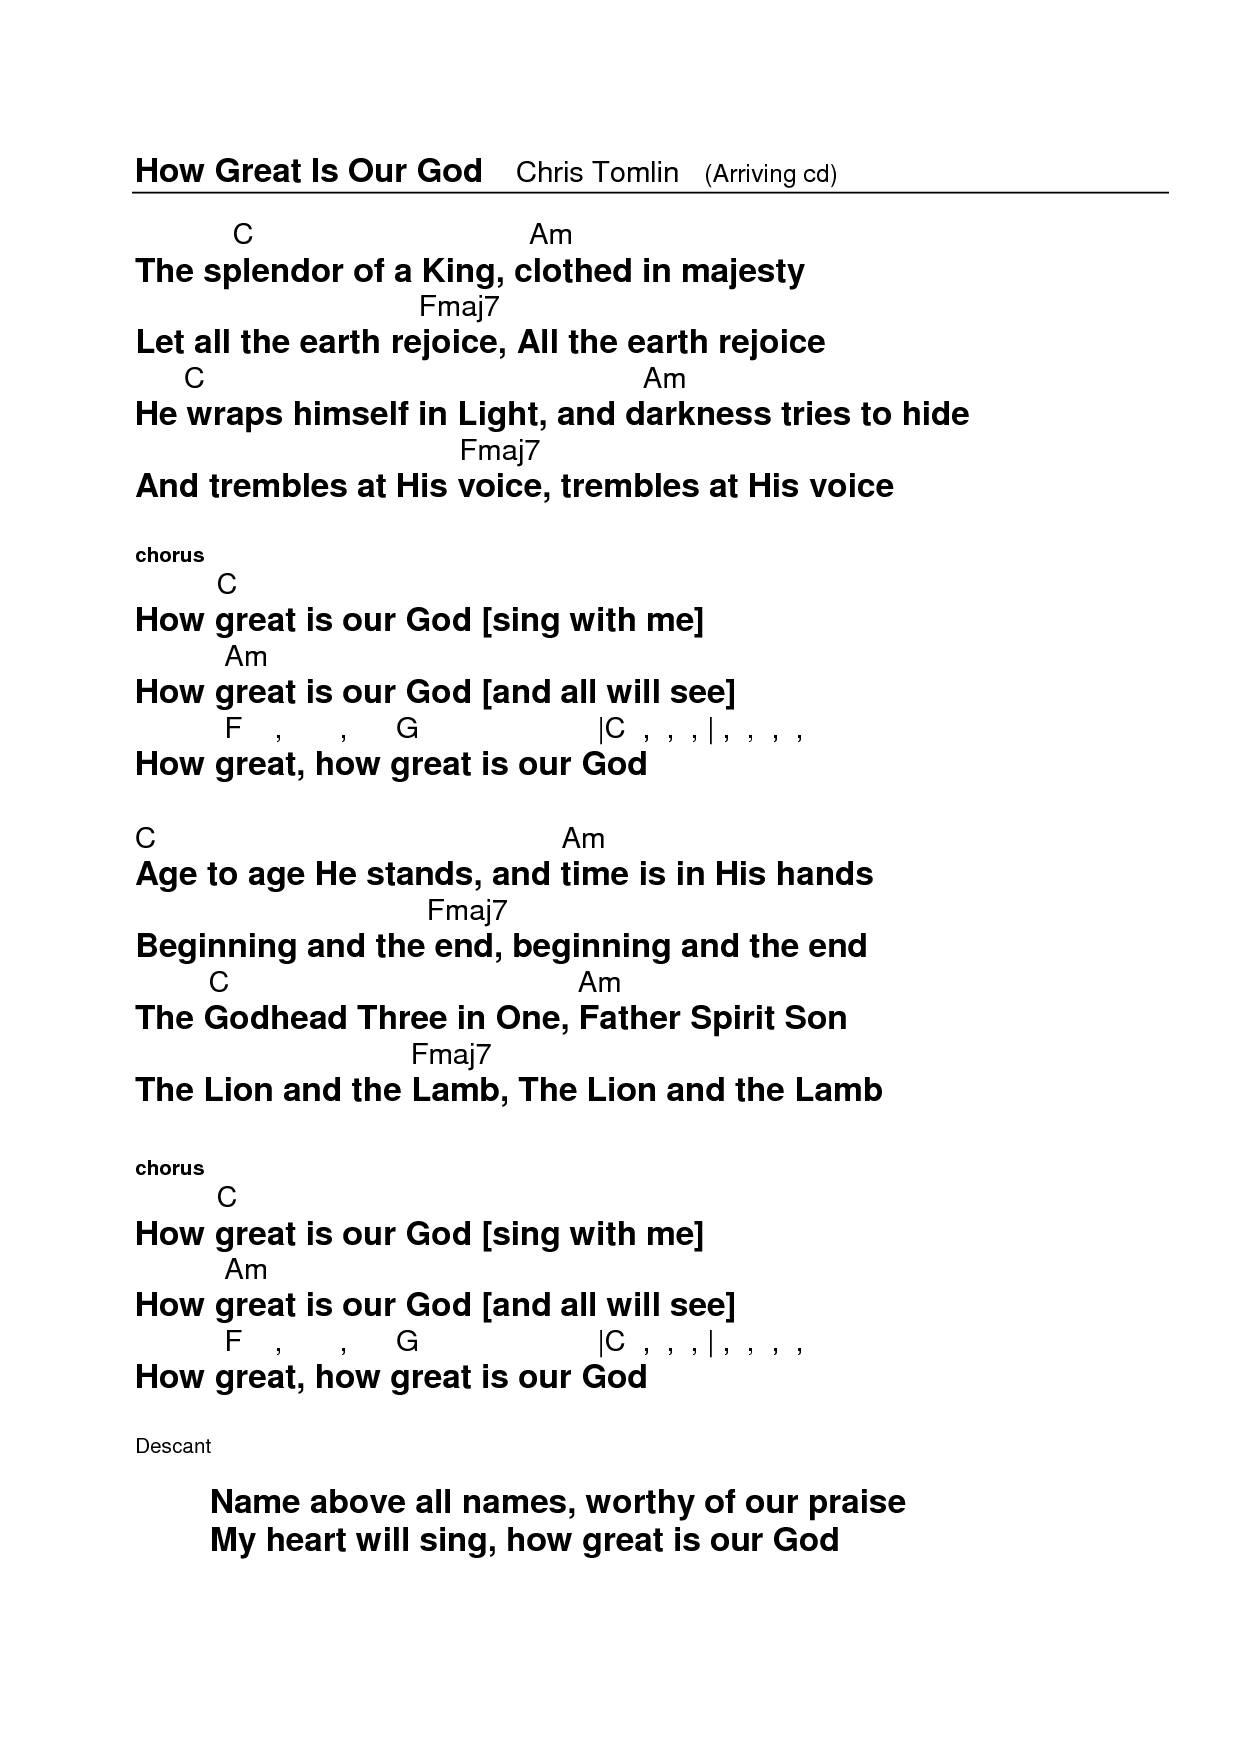 How Great Is Our God | Sheet Music Direct  |How Great Is Our God Lyrics